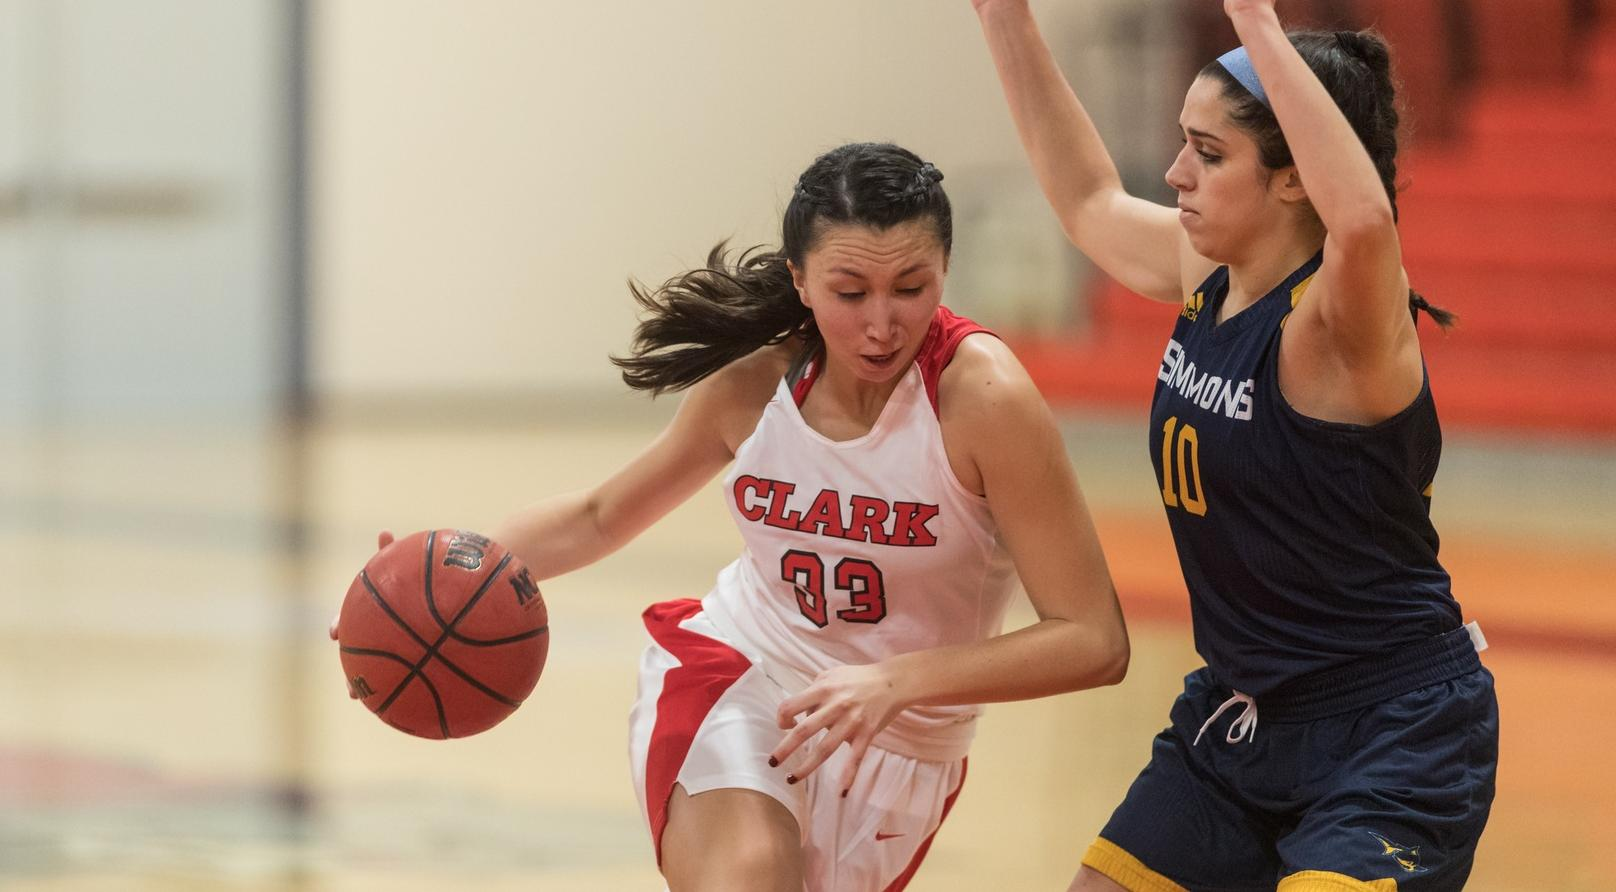 Clark Stumps Springfield in NEWMAC Overtime Victory, 51-50